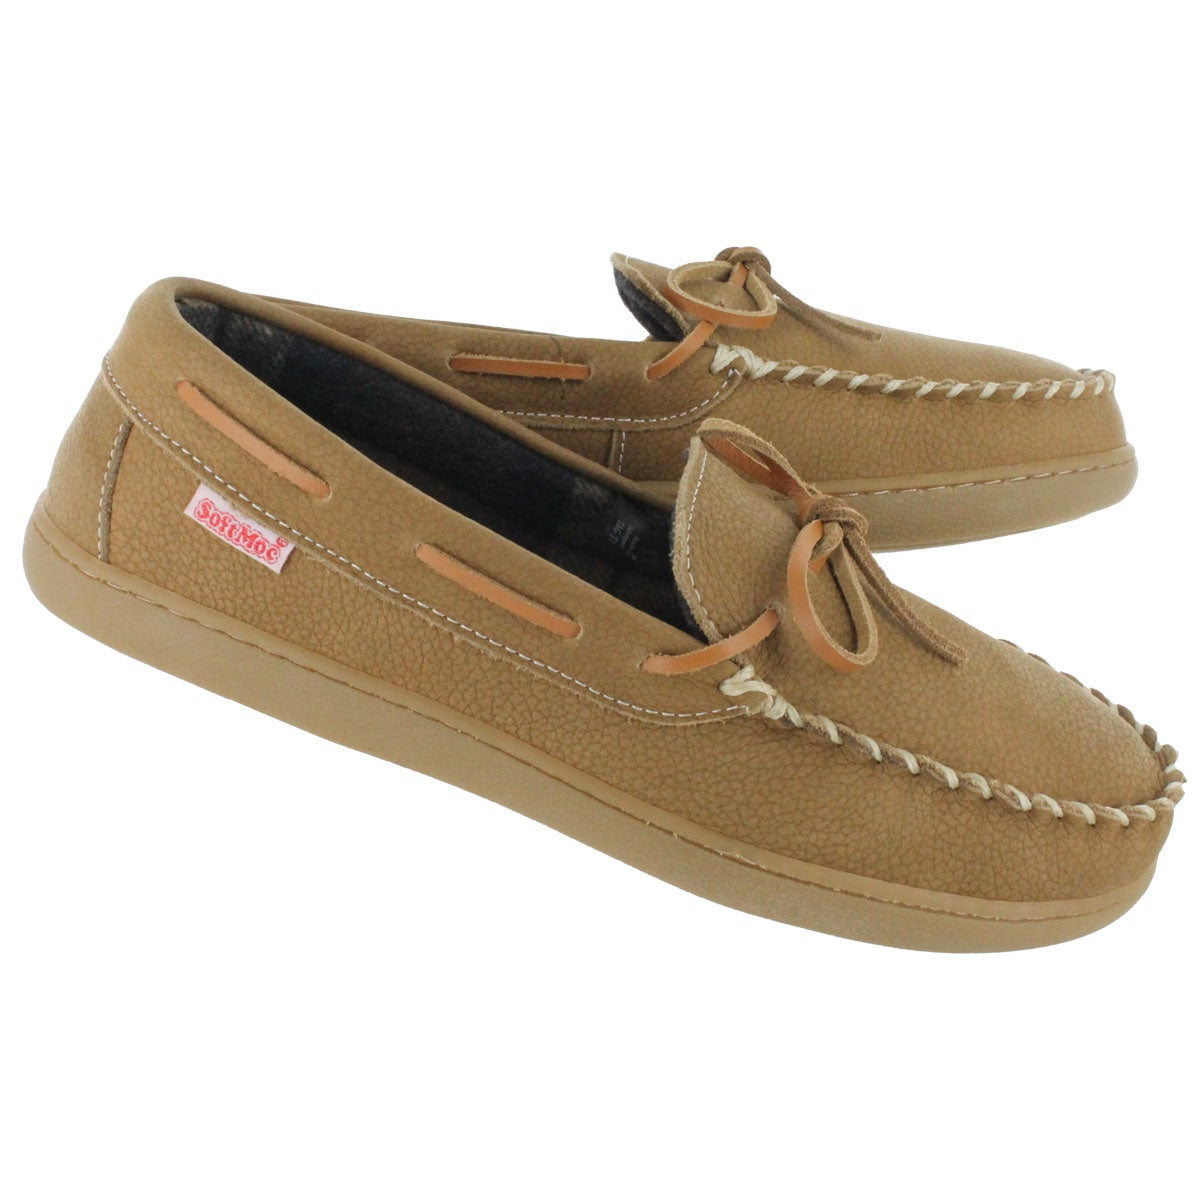 Mns Tag tan leather moccasin